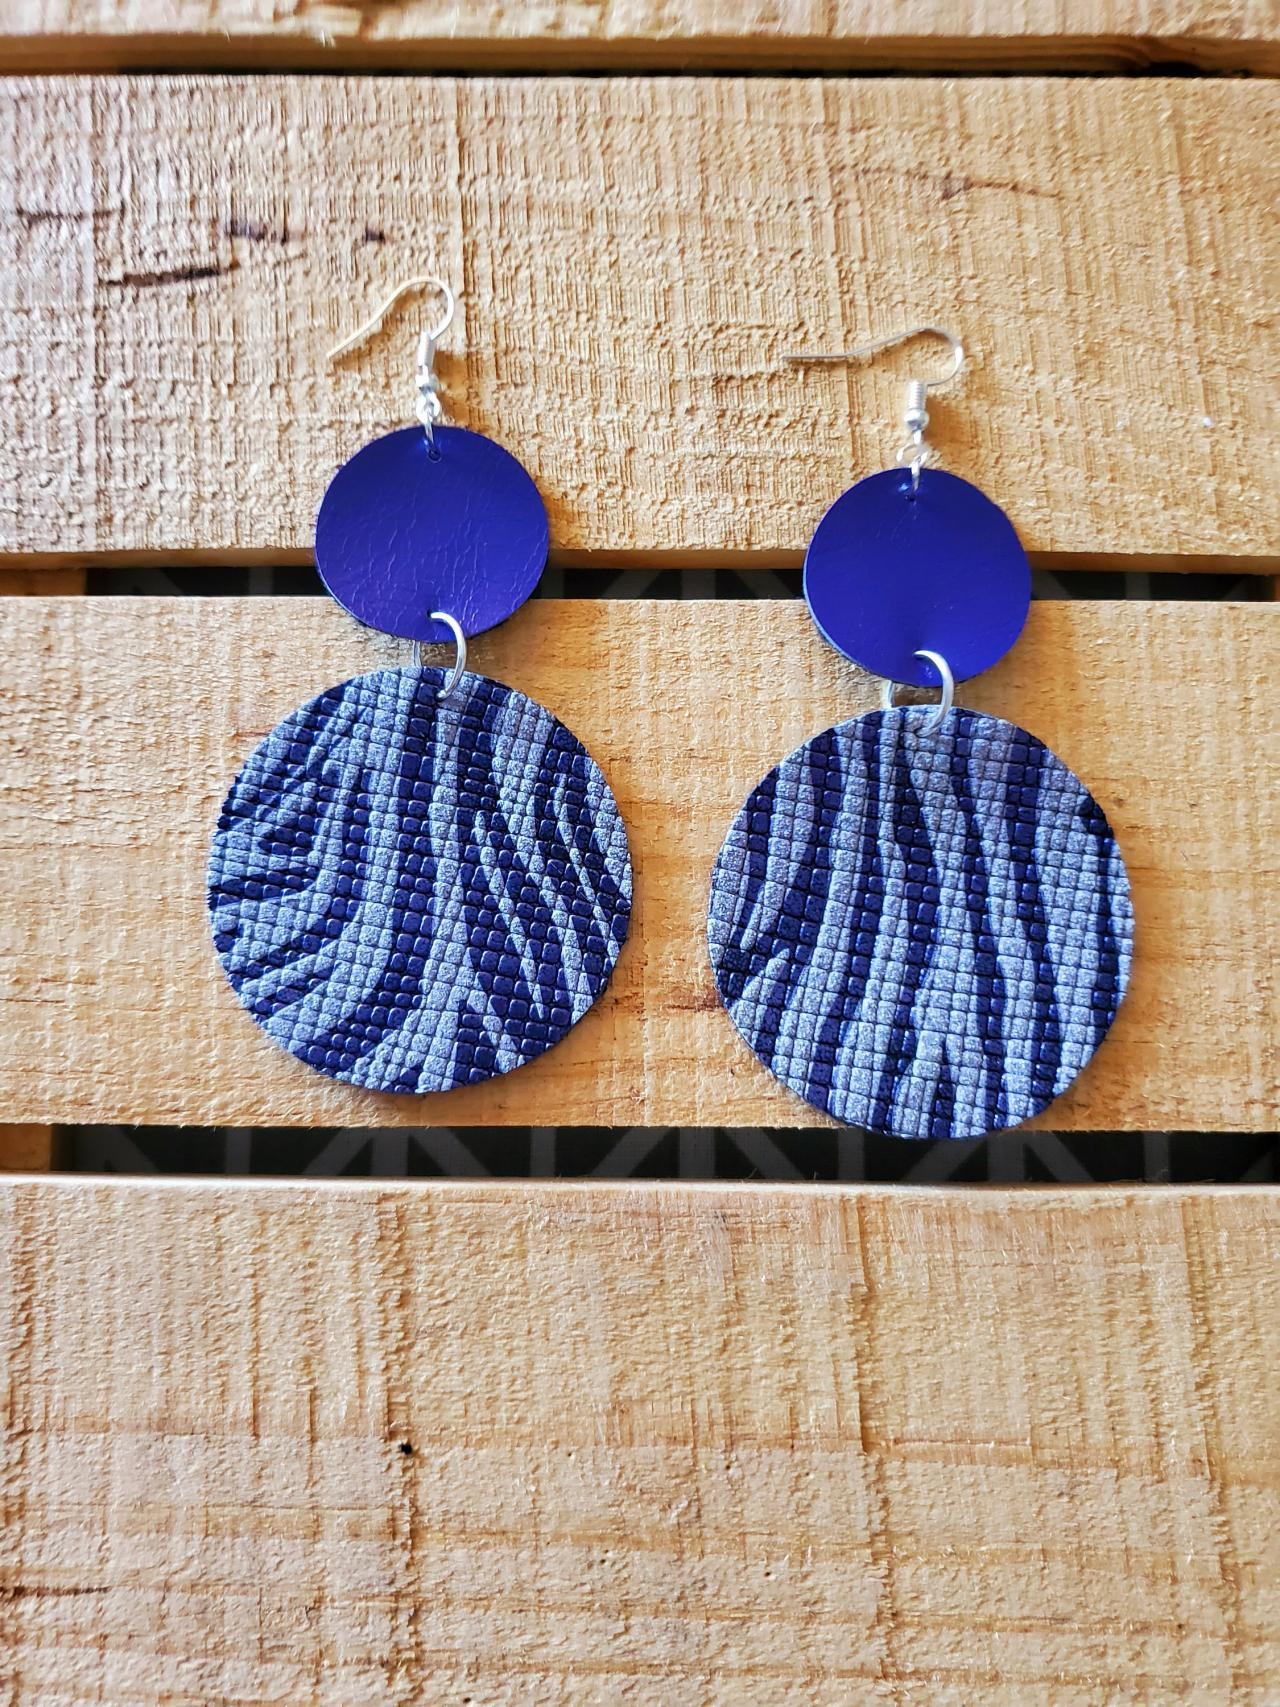 Purple and White Zebra Print Leather Earrings, Double Circle Earrings, Round Earrings, Boho Leather Earrings, Purple and White Earrings,